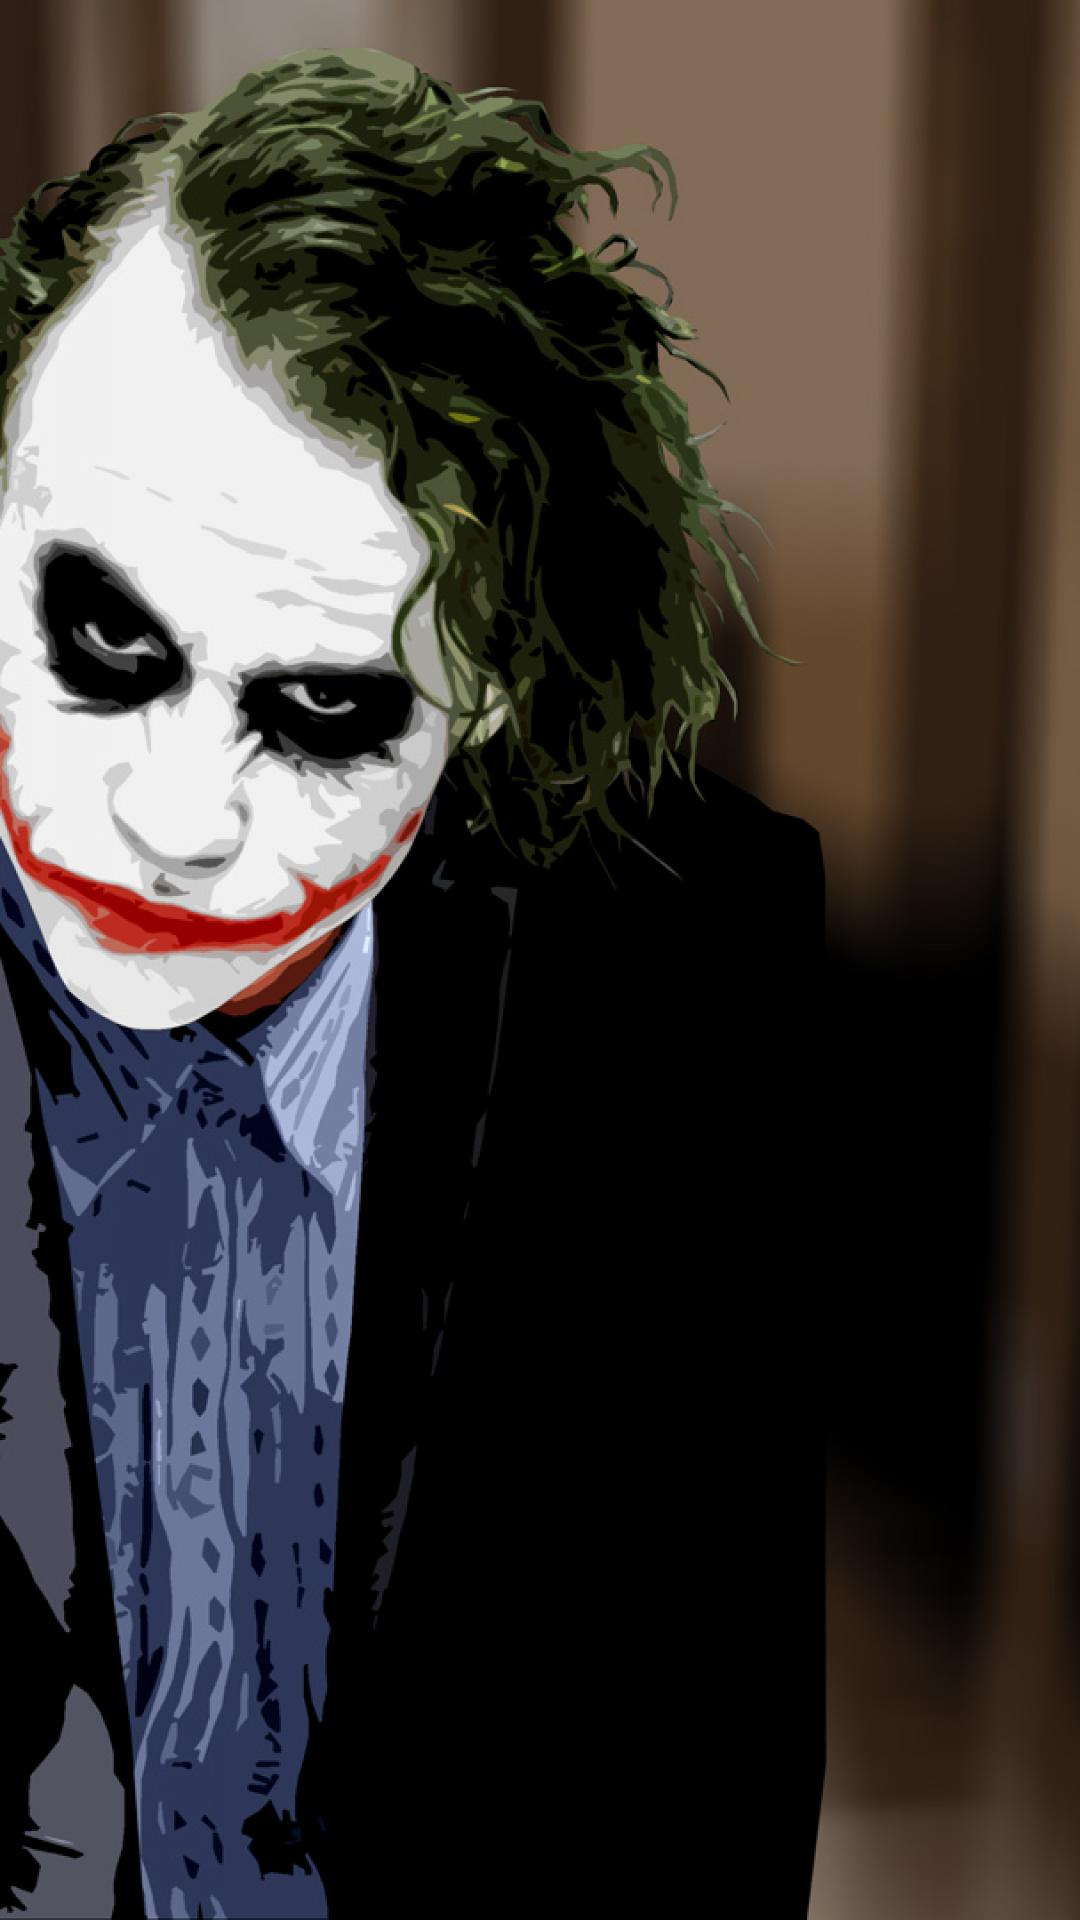 41 Heath Ledger Joker Wallpaper Hd On Wallpapersafari